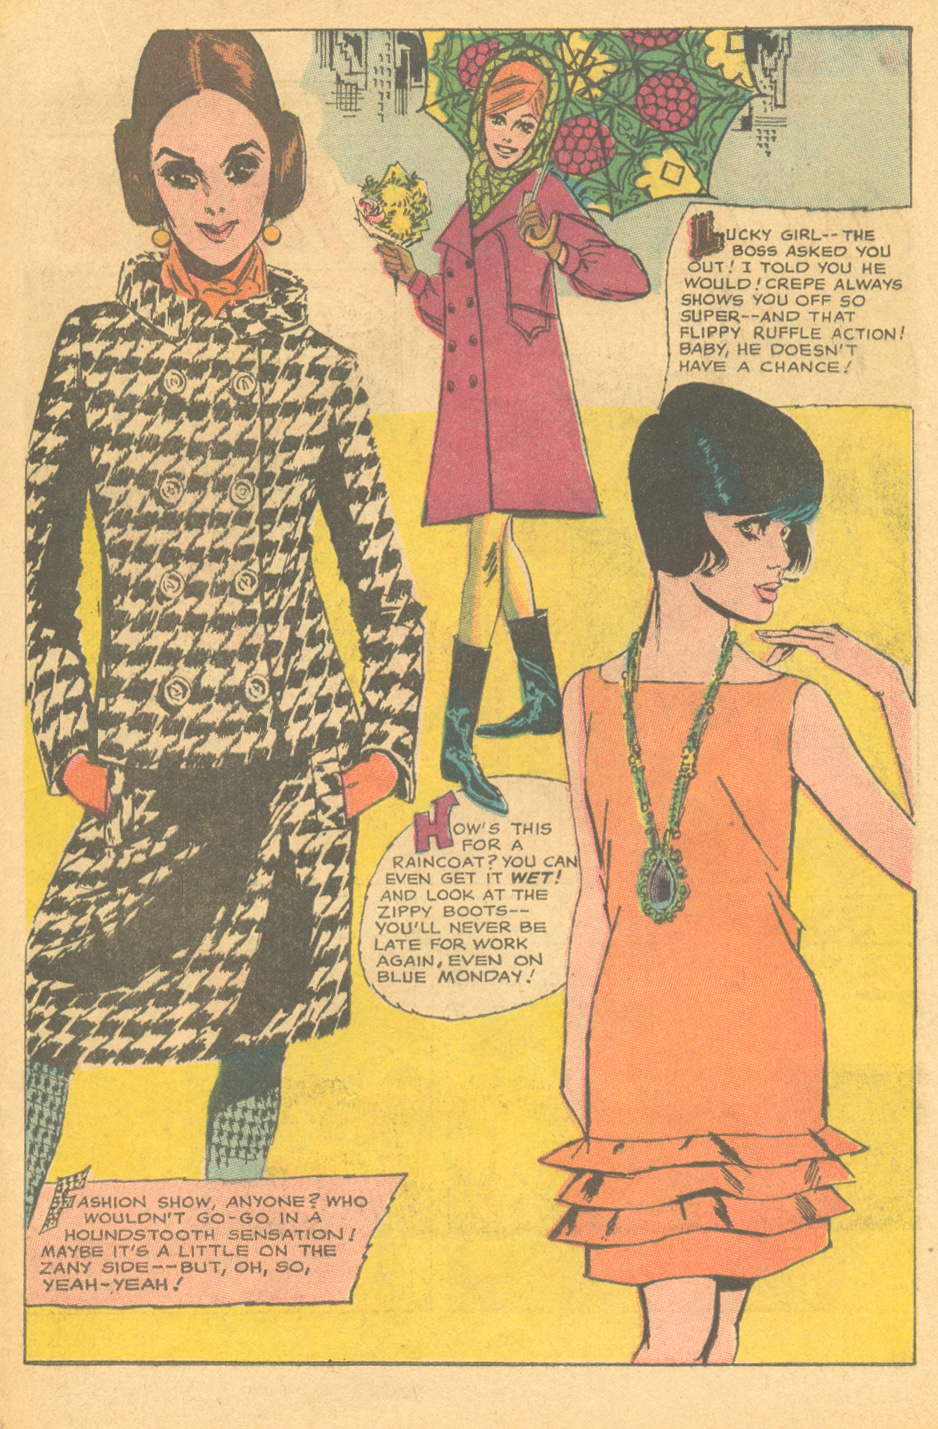 """Mad Mad Modes for Moderns"" Girls' Romances #122 (January 1967) Illustrated by Tony Abruzzo"